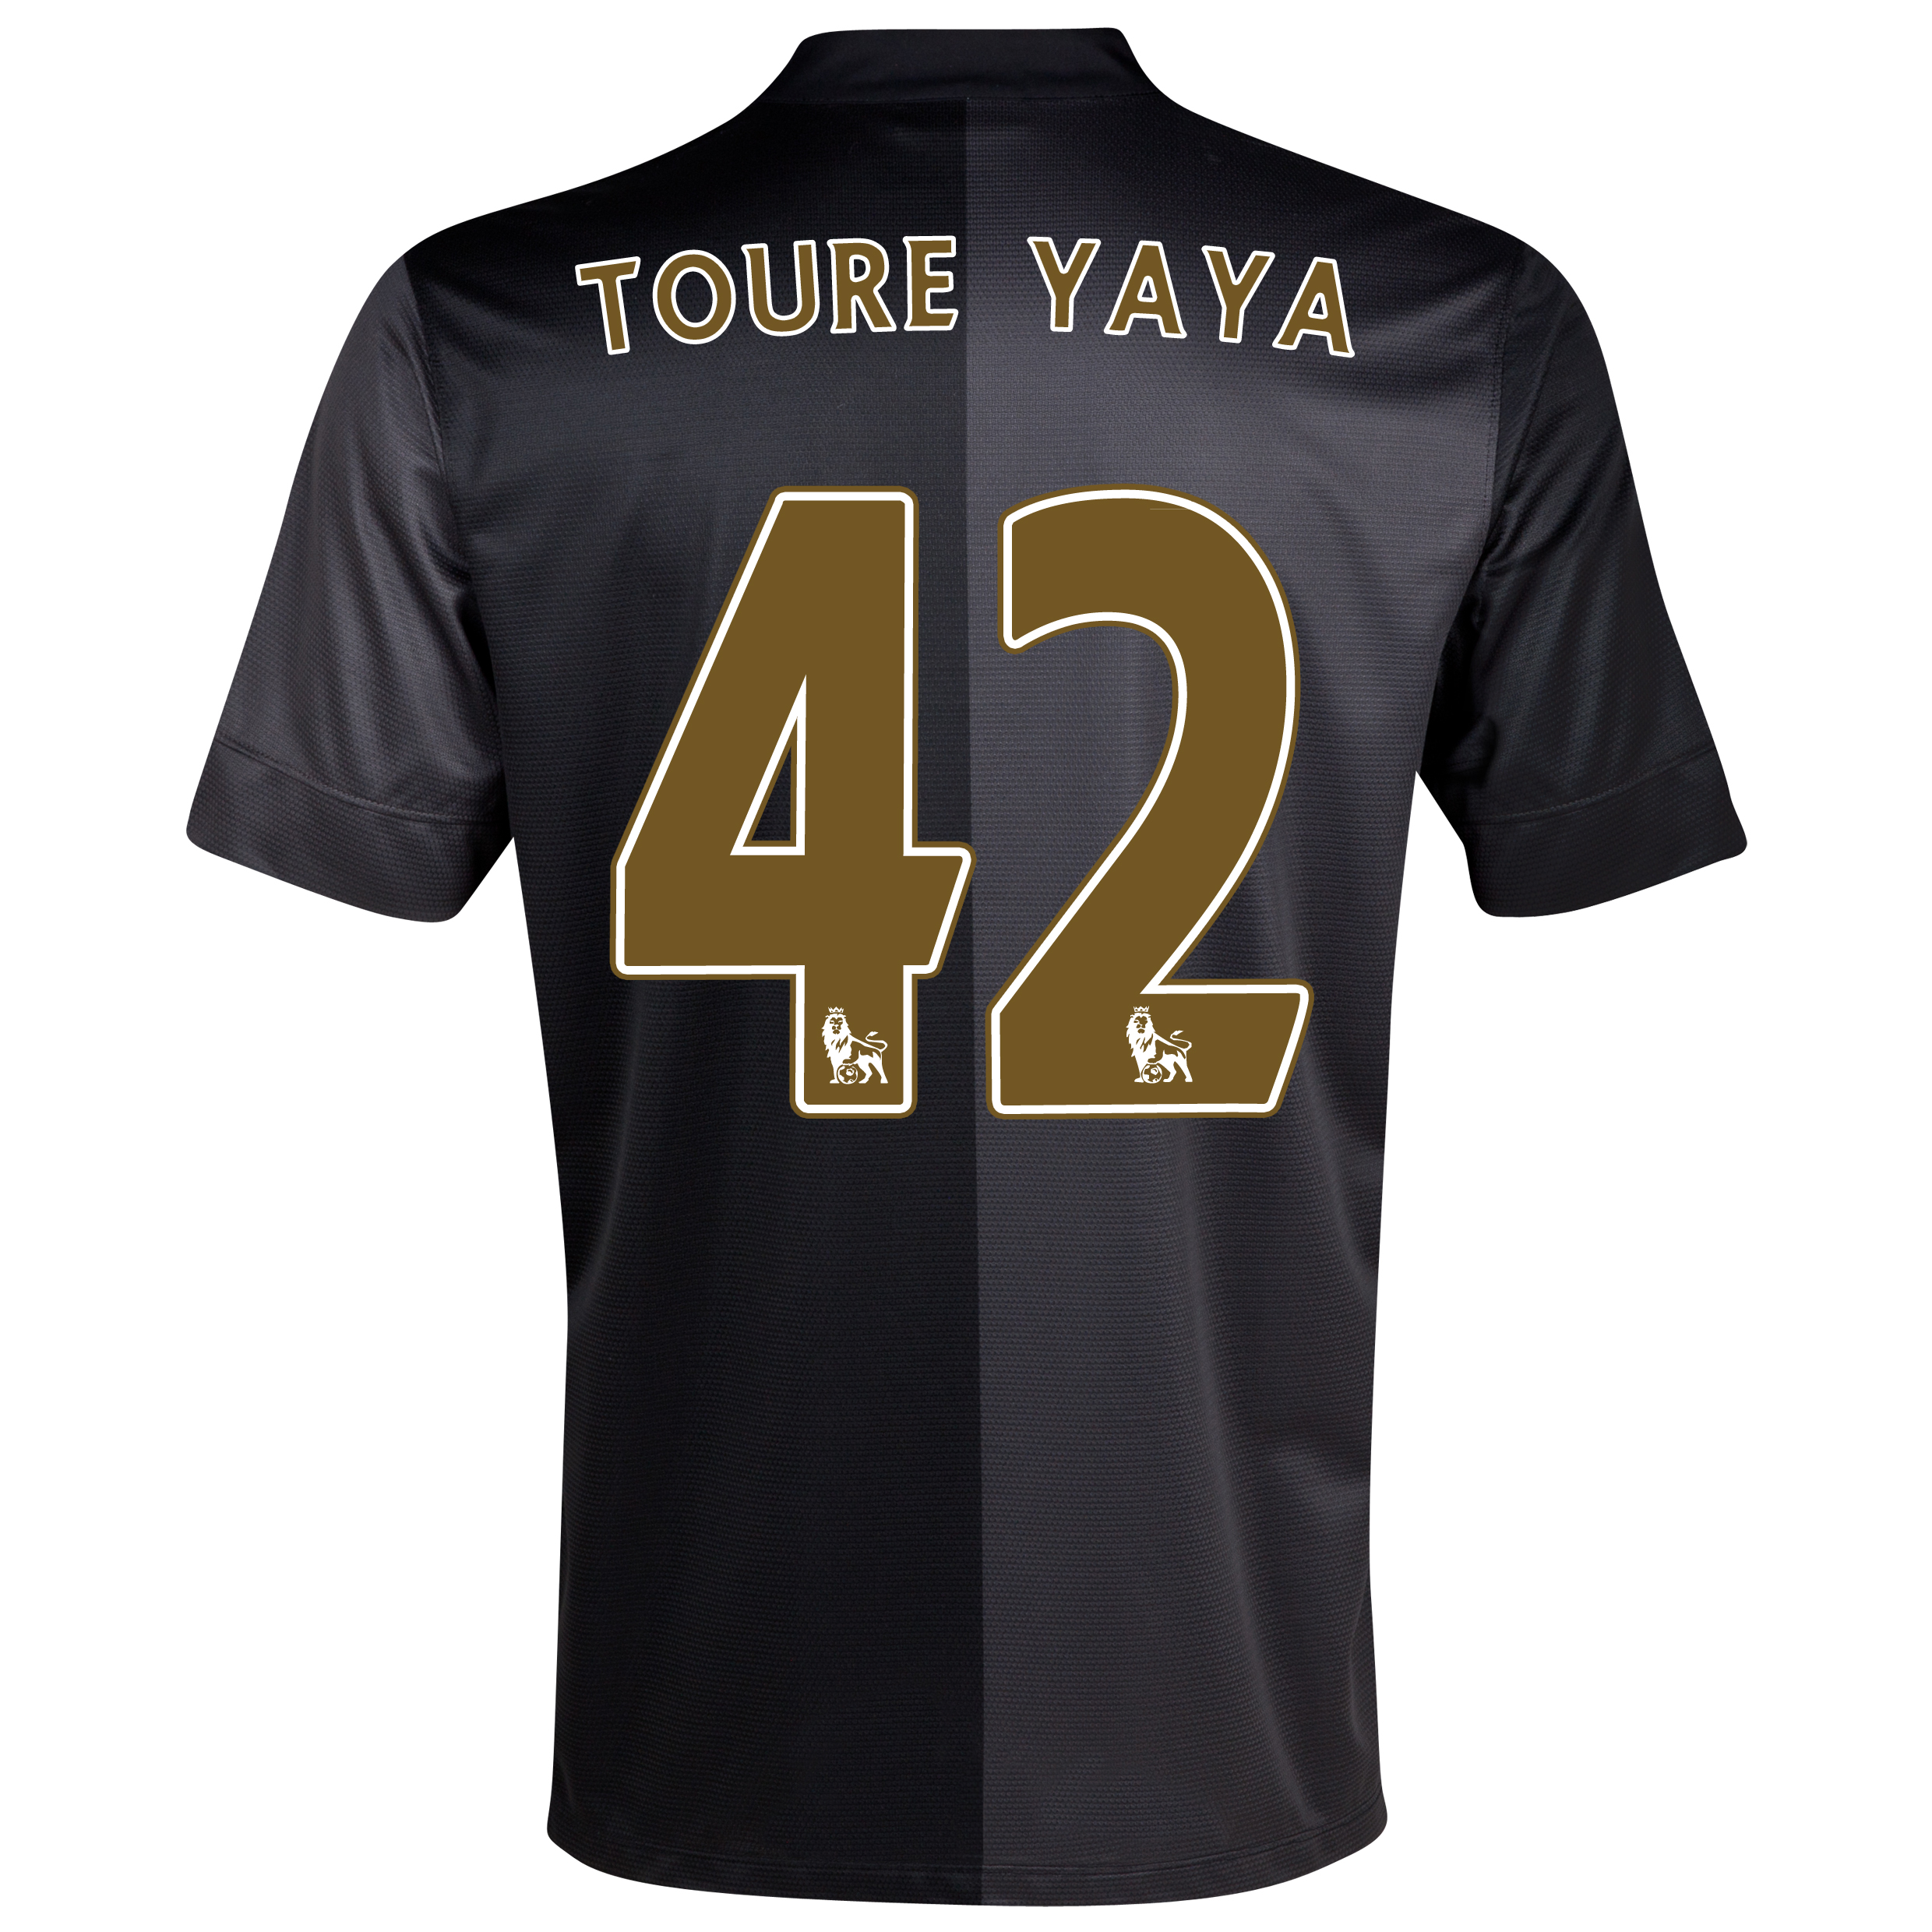 Manchester City Away Shirt 2013/14 - Junior with Toure Yaya 42 printing